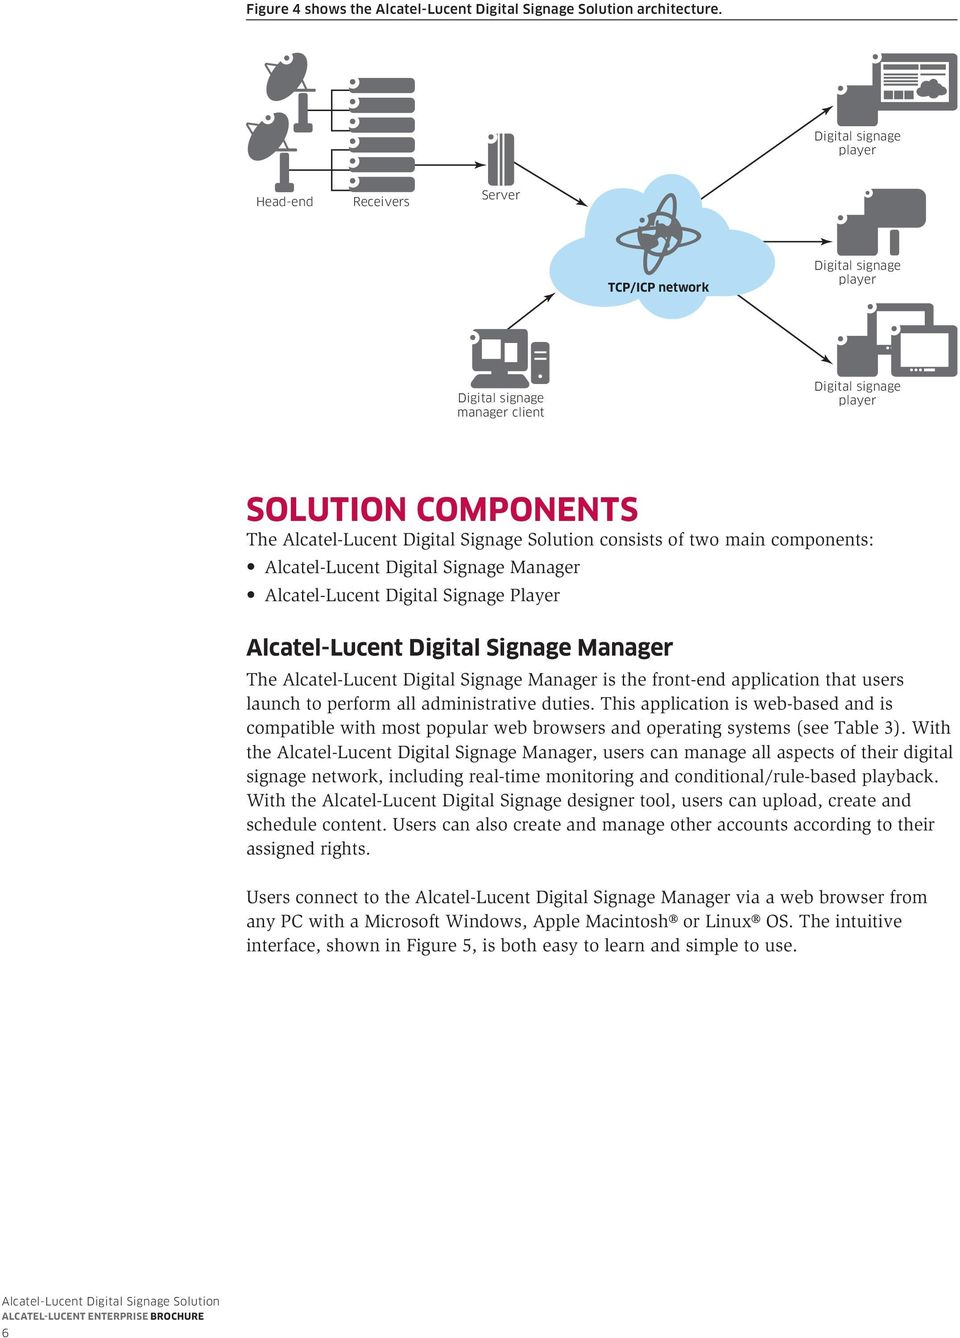 Alcatel-Lucent Digital Signage Manager Alcatel-Lucent Digital Signage Player Alcatel-Lucent Digital Signage Manager The Alcatel-Lucent Digital Signage Manager is the front-end application that users